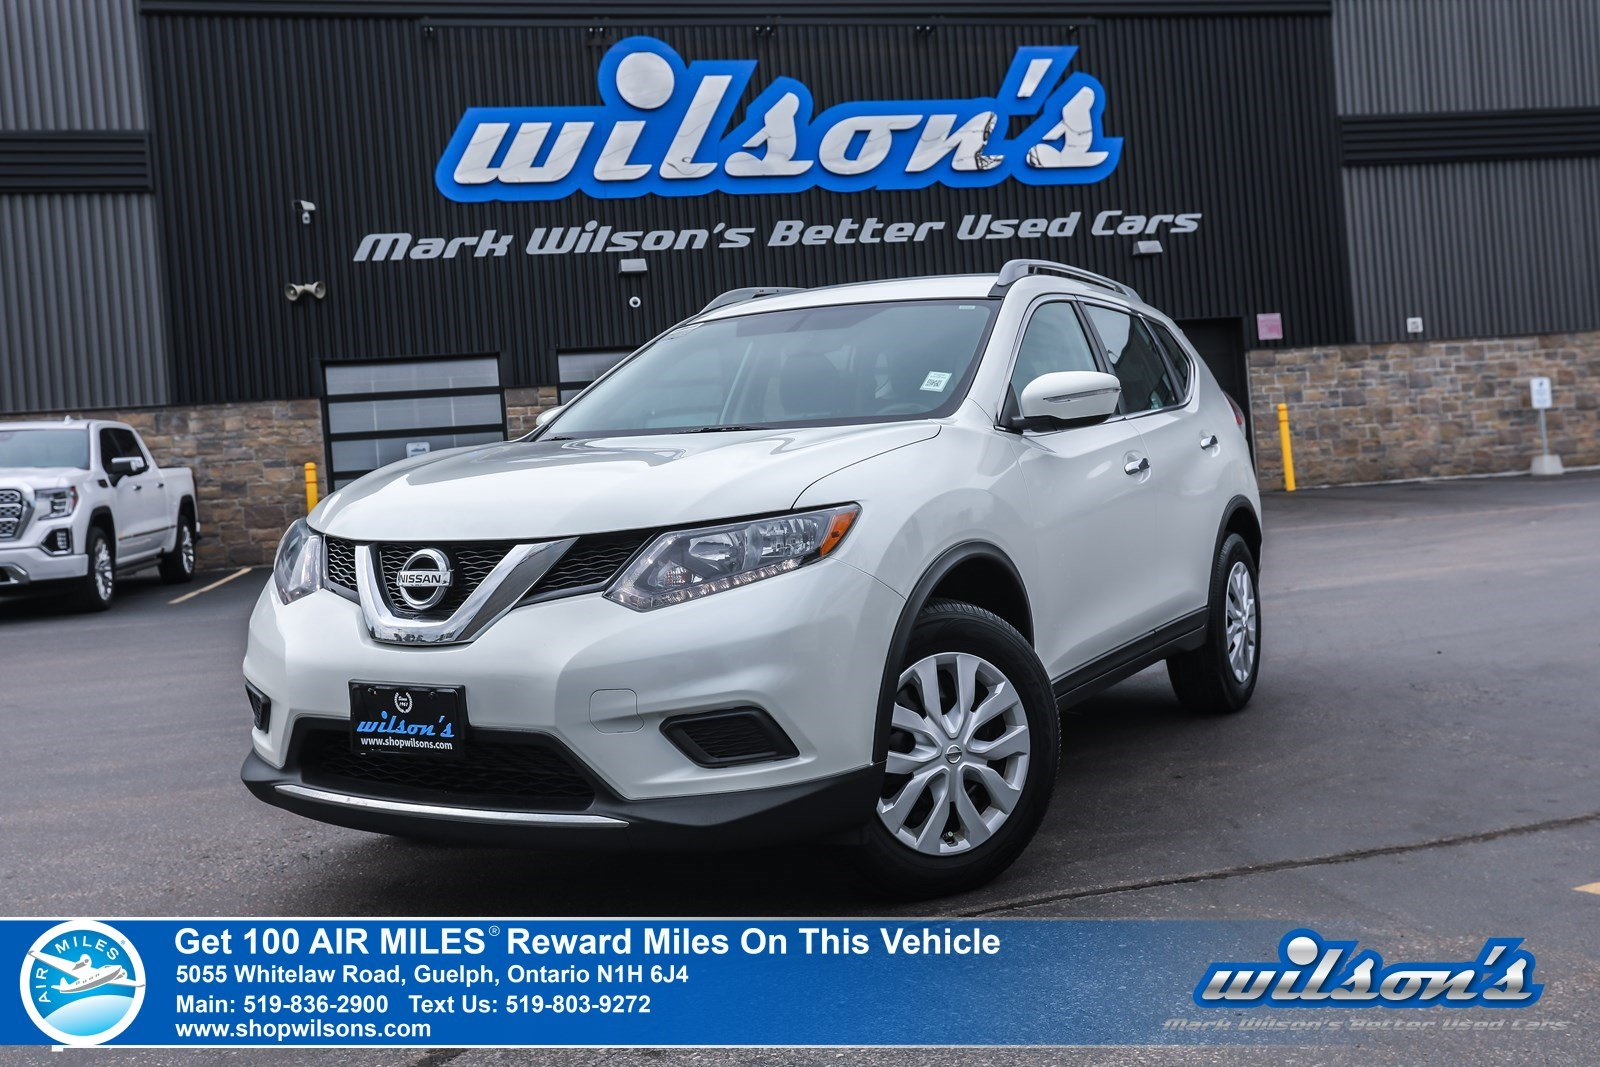 Certified Pre-Owned 2015 Nissan Rogue S AWD - Bluetooth,Cruise Control, Steering Radio Controls, Power Package and more!